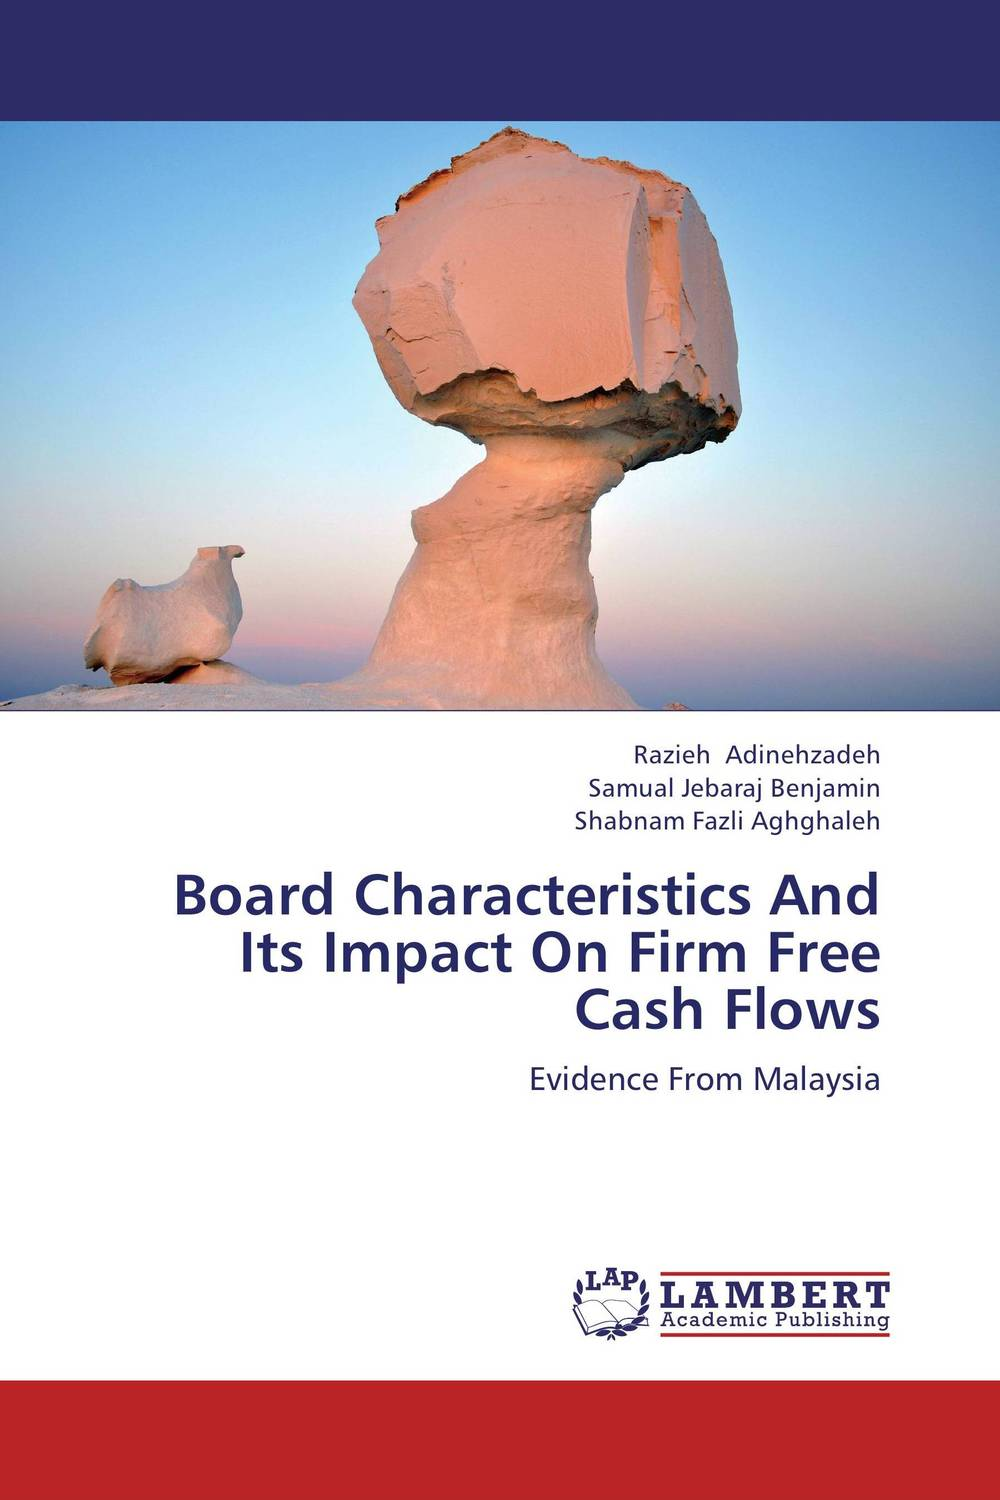 Board Characteristics And Its Impact On Firm Free Cash Flows timothy jury cash flow analysis and forecasting the definitive guide to understanding and using published cash flow data